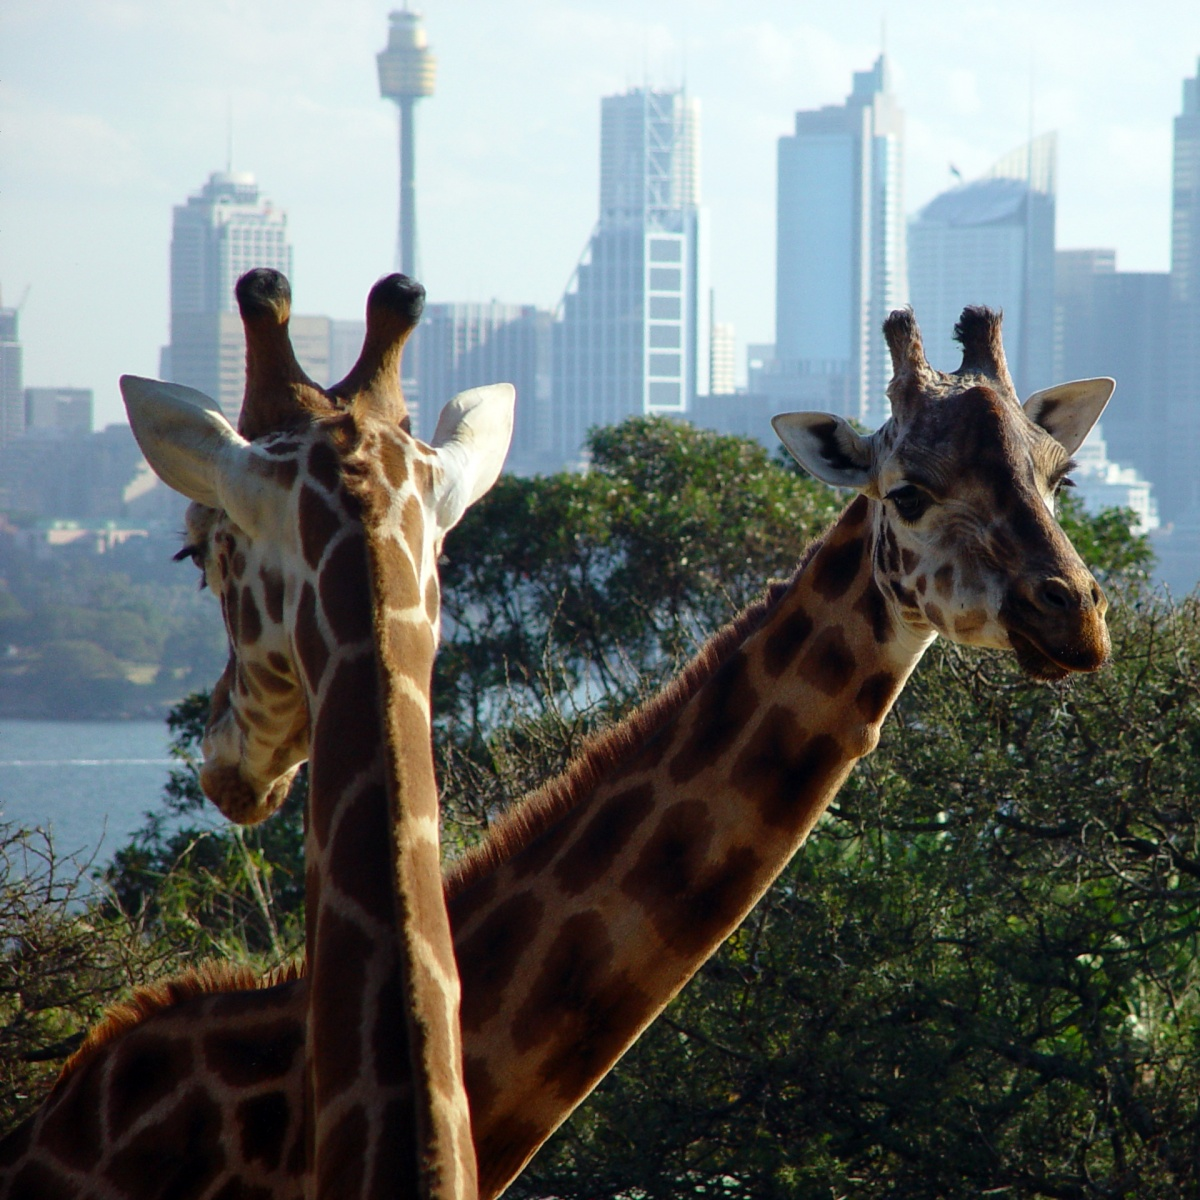 Australia's Taronga Zoo in Sydney is bound by strict standards on animal welfare. Photo: Getty